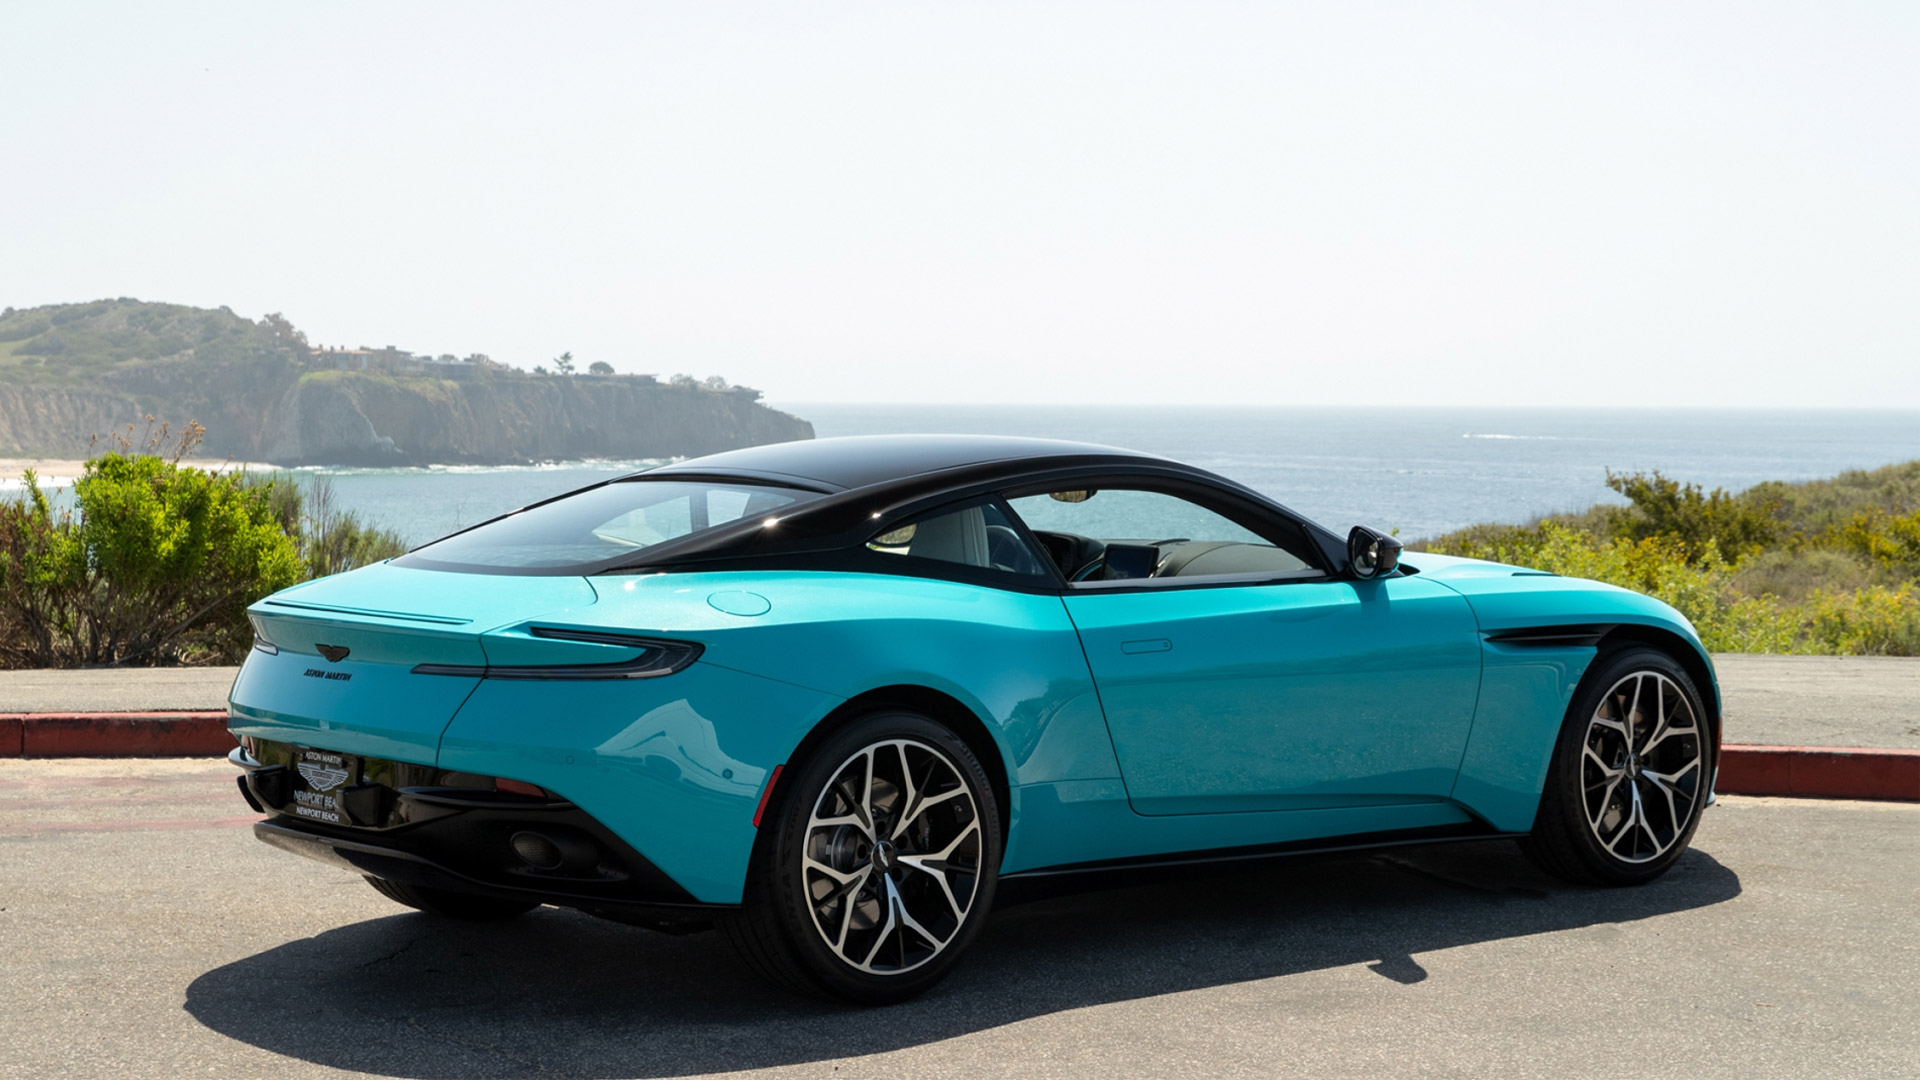 The Aston Martin DB11 Coupe in Butterfly Teal Angled Rear View